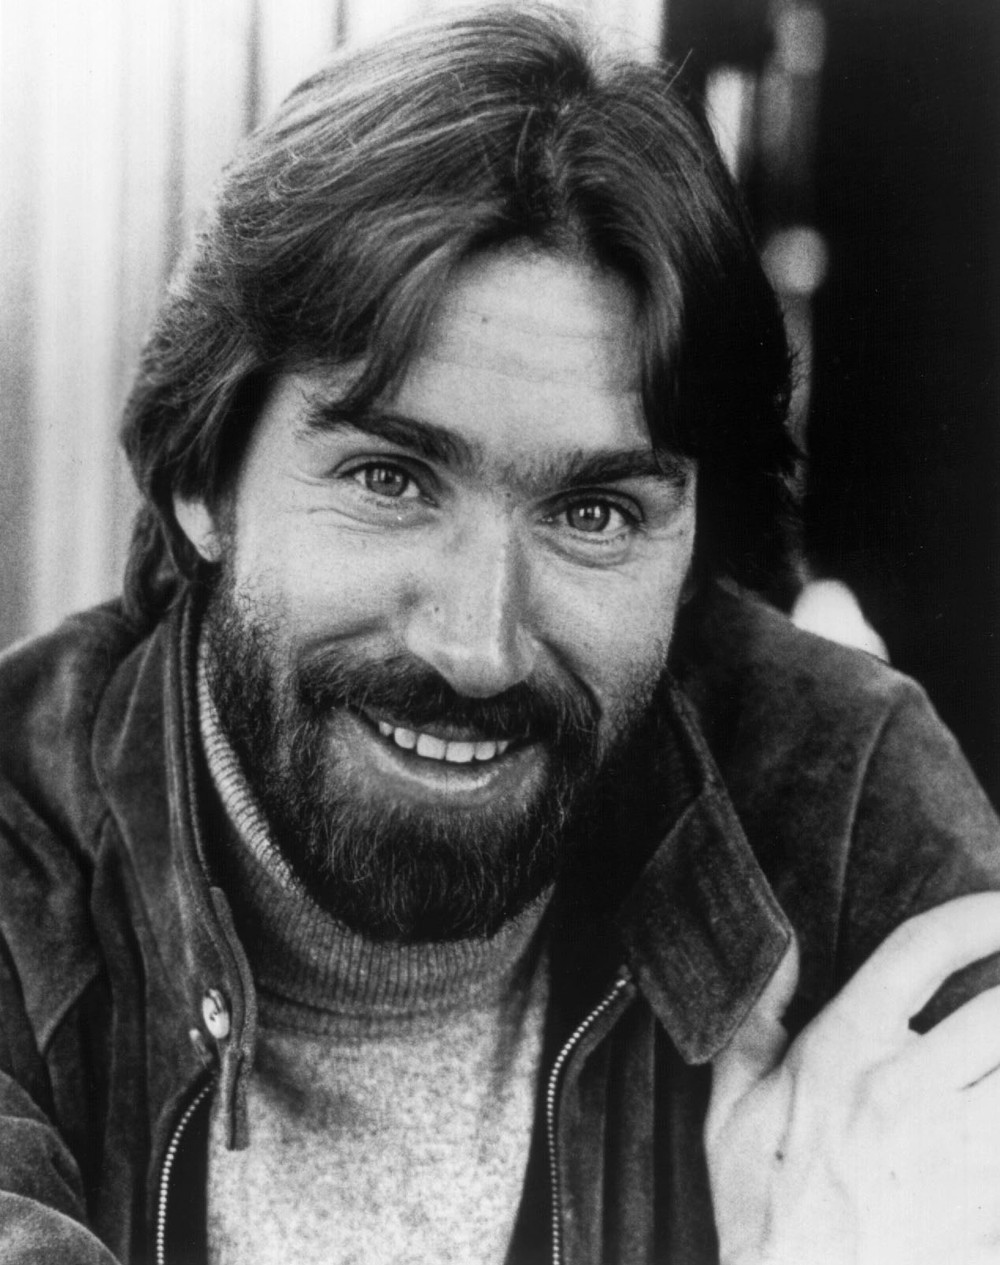 dan fogelberg on spotify - Dan Fogelberg Christmas Song